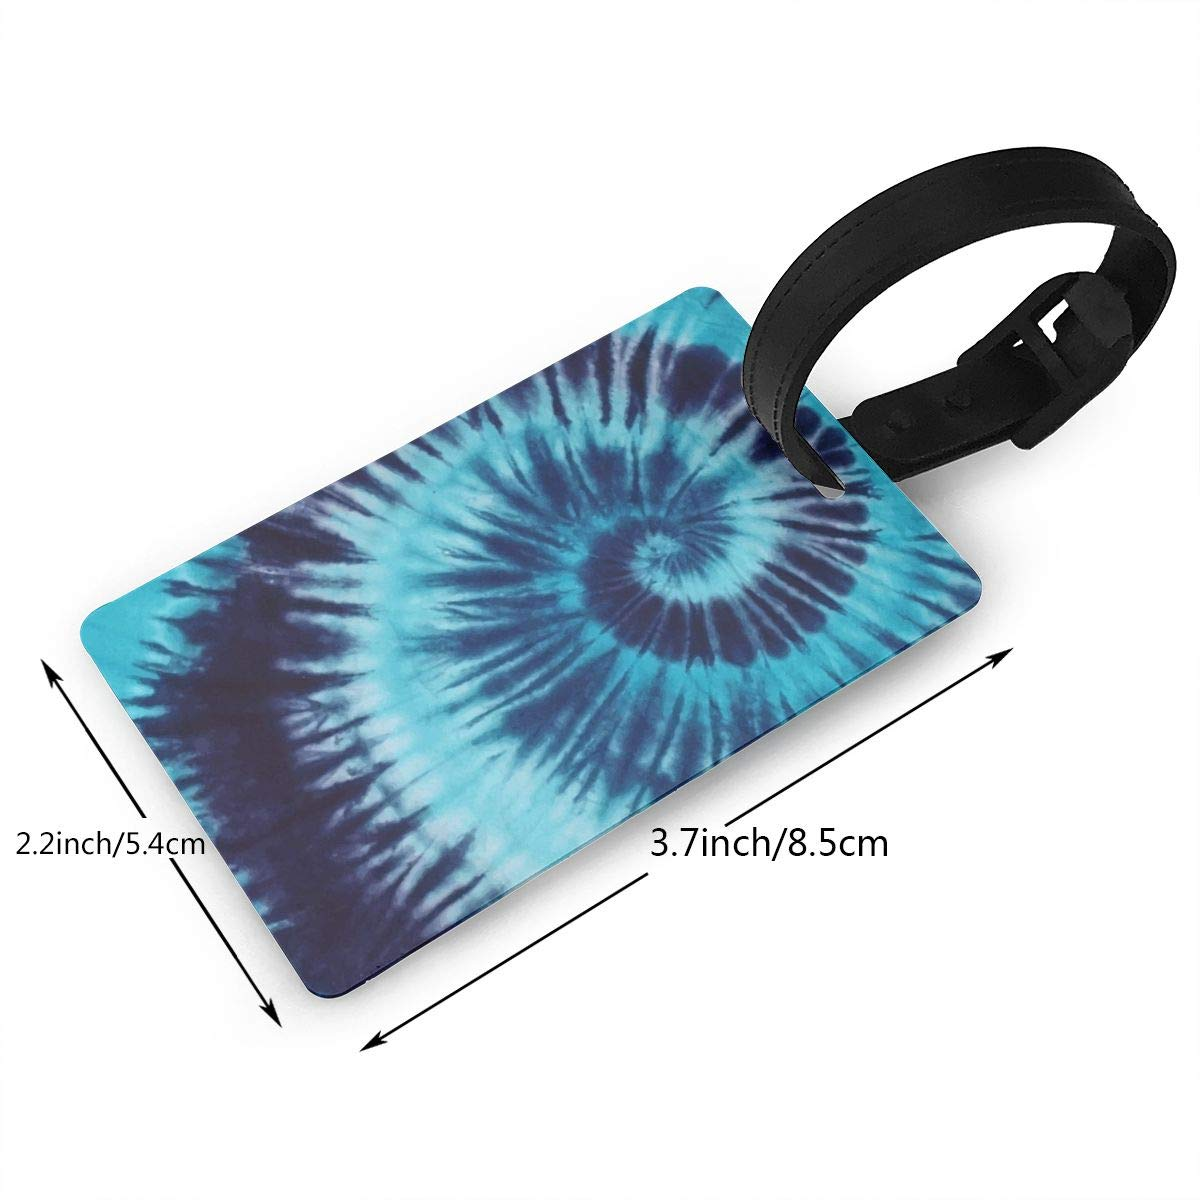 Blue Tie Dye2 Cruise Luggage Tag For Suitcase Bag Accessories 2 Pack Luggage Tags